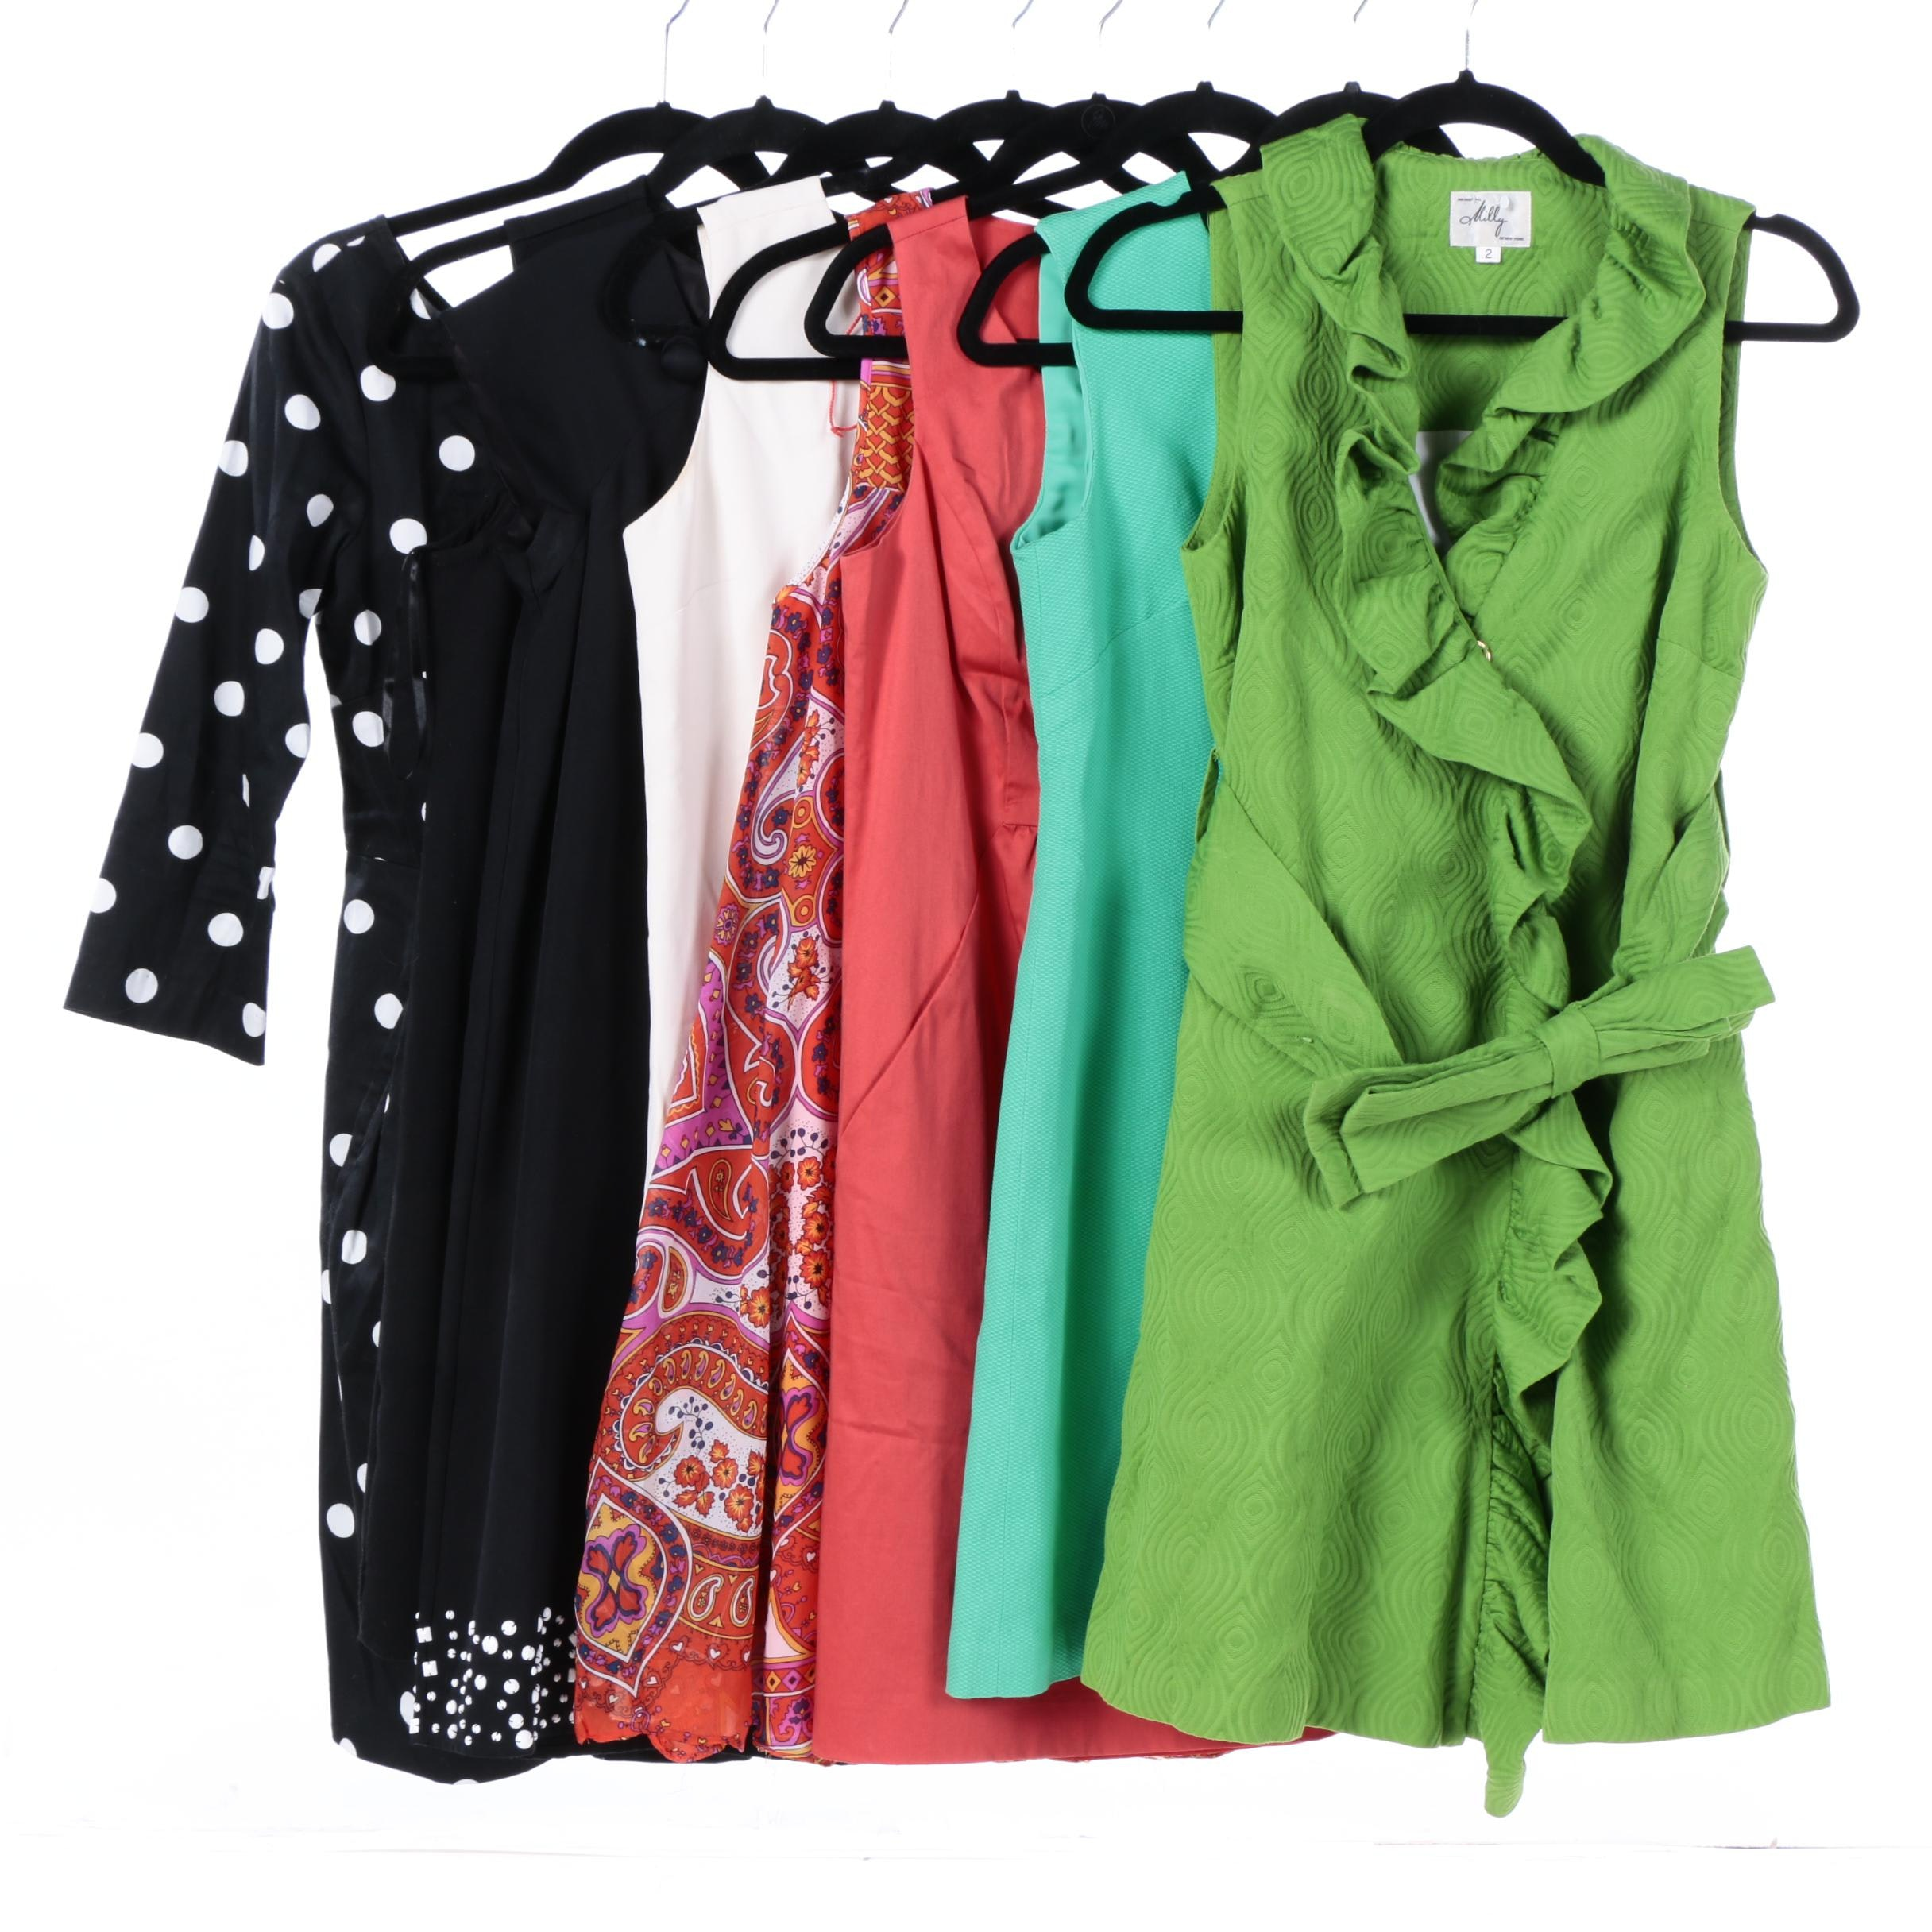 Women's Dresses Including Ann Taylor Loft, Betsey Johnson and Tommy Bahama